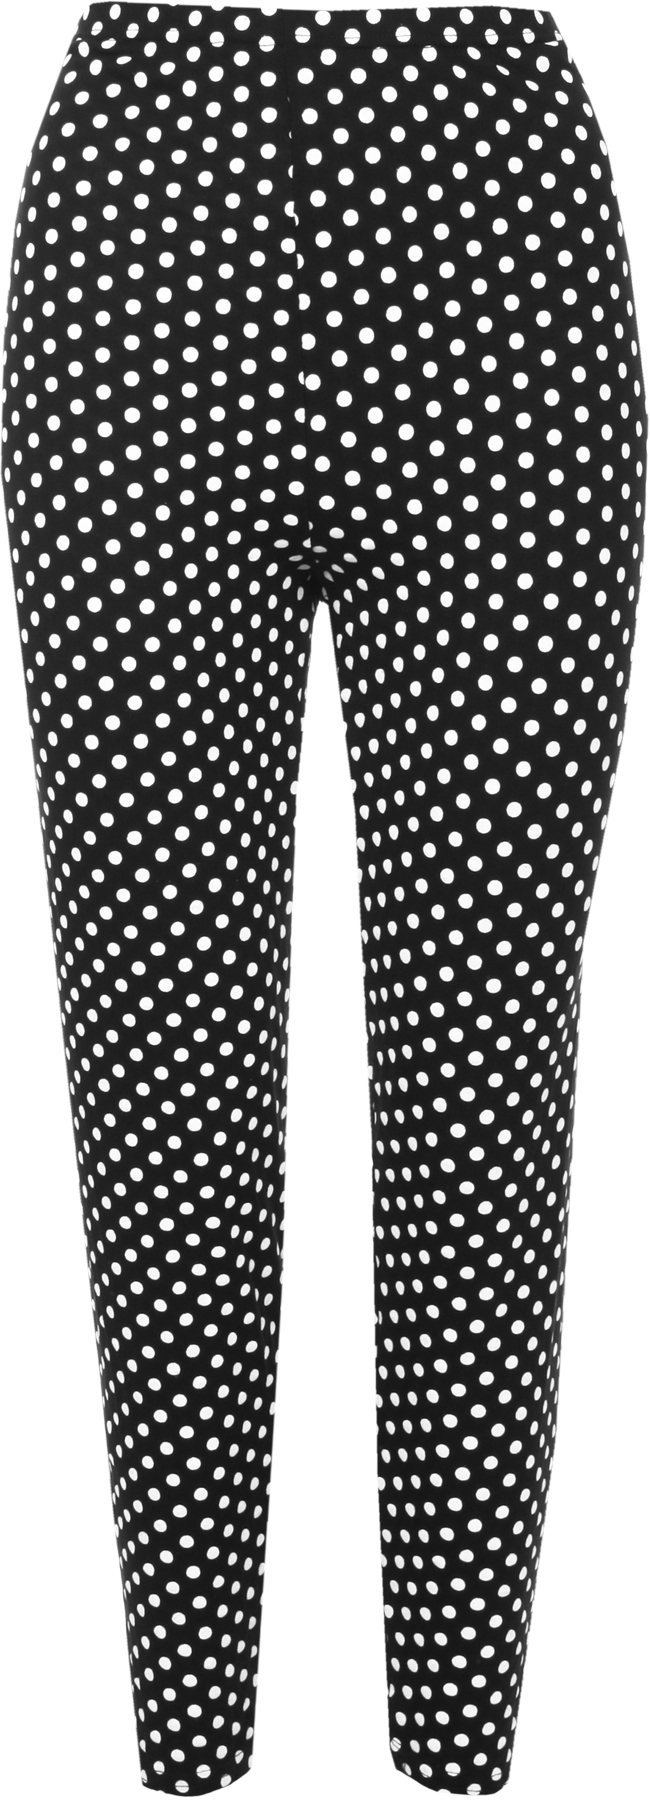 FORMAL OR CASUAL PANTS FOR WOMEN. A pair of pants for every woman's style. Wide legged and comfortable pieces or skinny fits. Appliques, masculine cuts and original prints are key this season. FLOWY POLKA DOT PANTS. FLOWY POLKA DOT PANTS. FLOWY PRINTED CULOTTES. RUSTIC PALAZZO PANTS. RUSTIC PALAZZO PANTS. TWO-TONED WAVY KNIT PANTS.